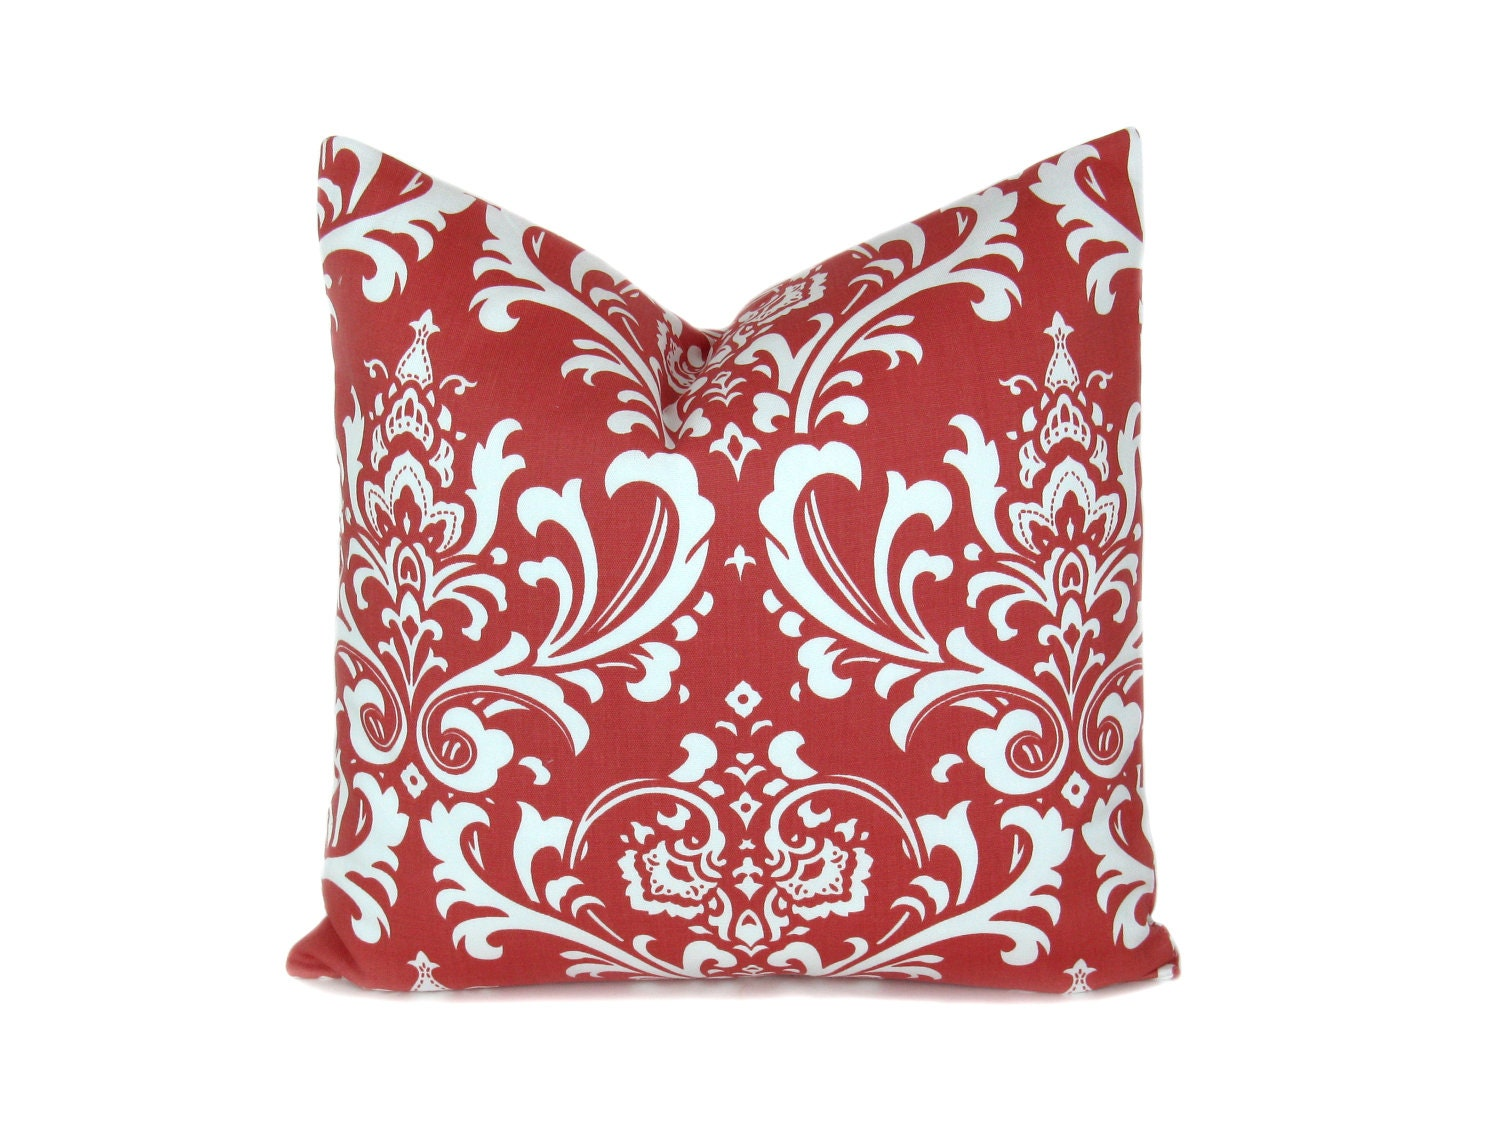 Throw Pillows Coral : Coral Pillows Decorative Throw Pillow Covers ONE by EastAndNest